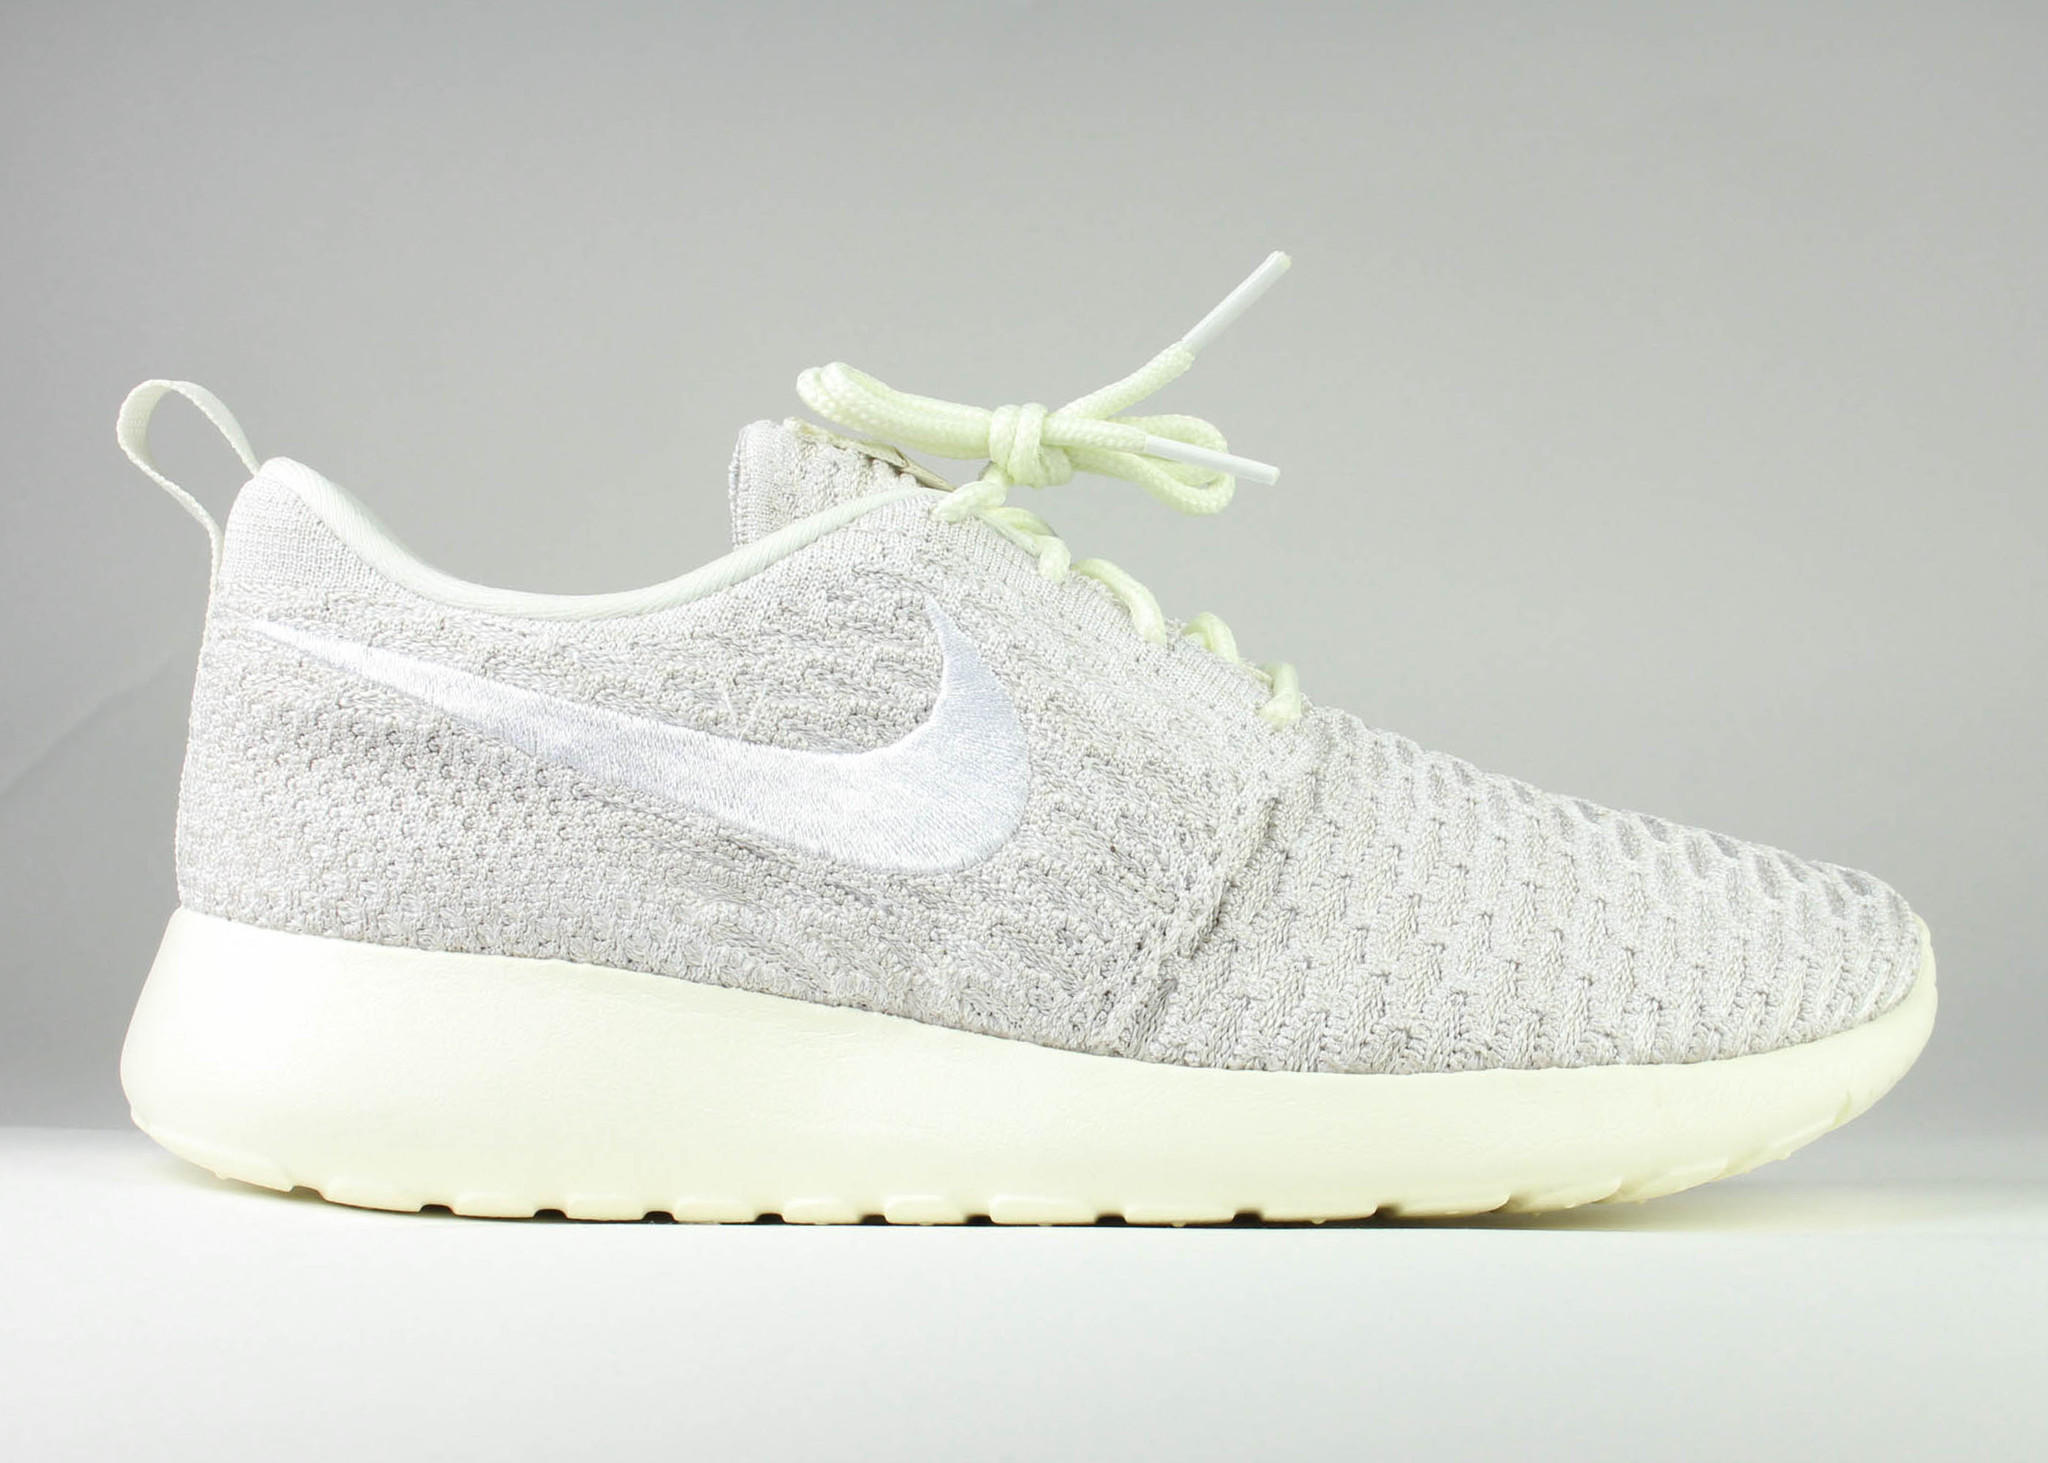 a4c06409e666 Nike Women s Roshe Run One Flyknit Sail from KickzStore